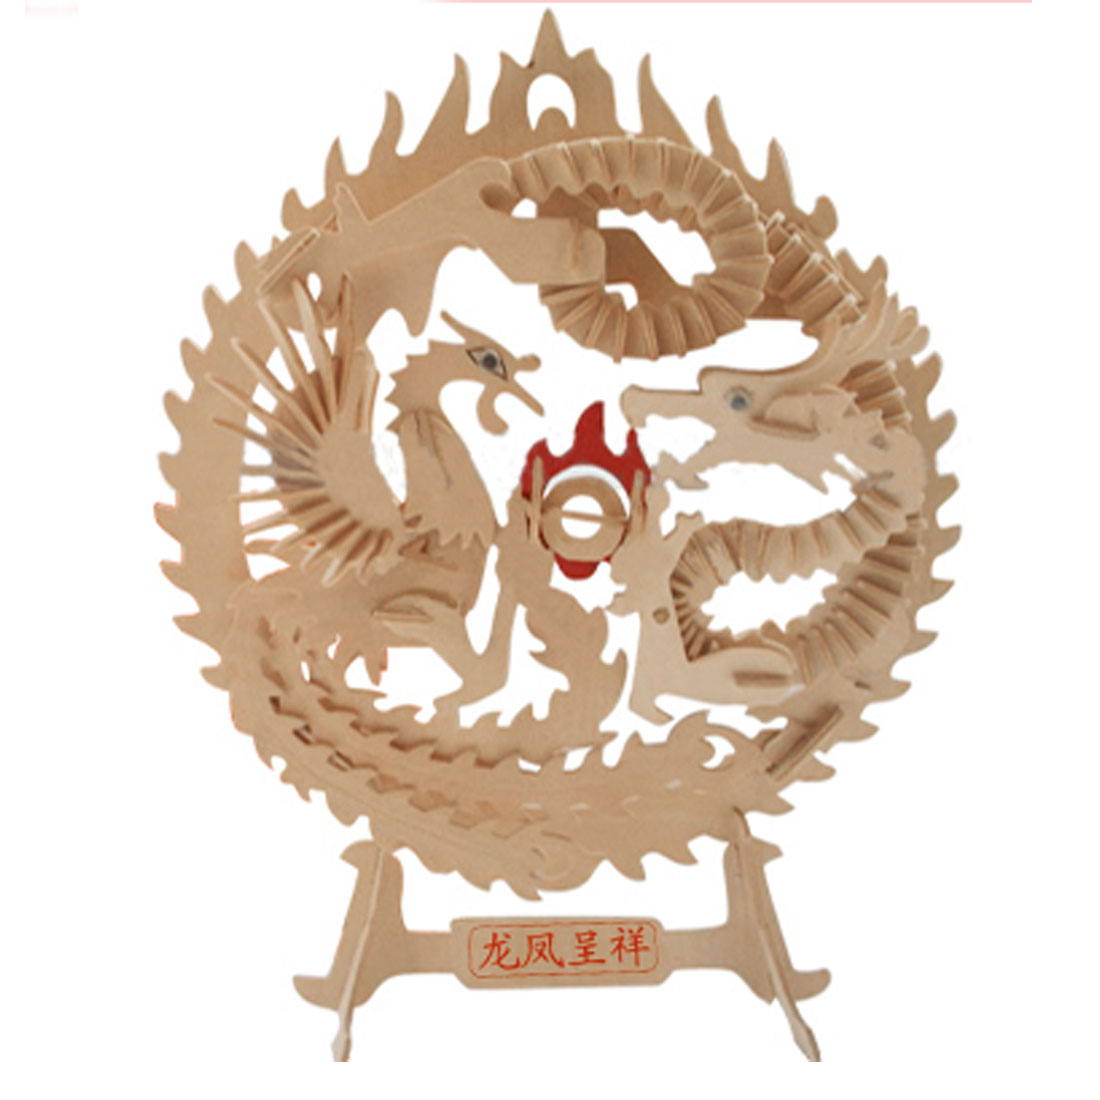 Lucky Dragon and Phoenix Model Wood Construction Kit DIY Puzzle Toy